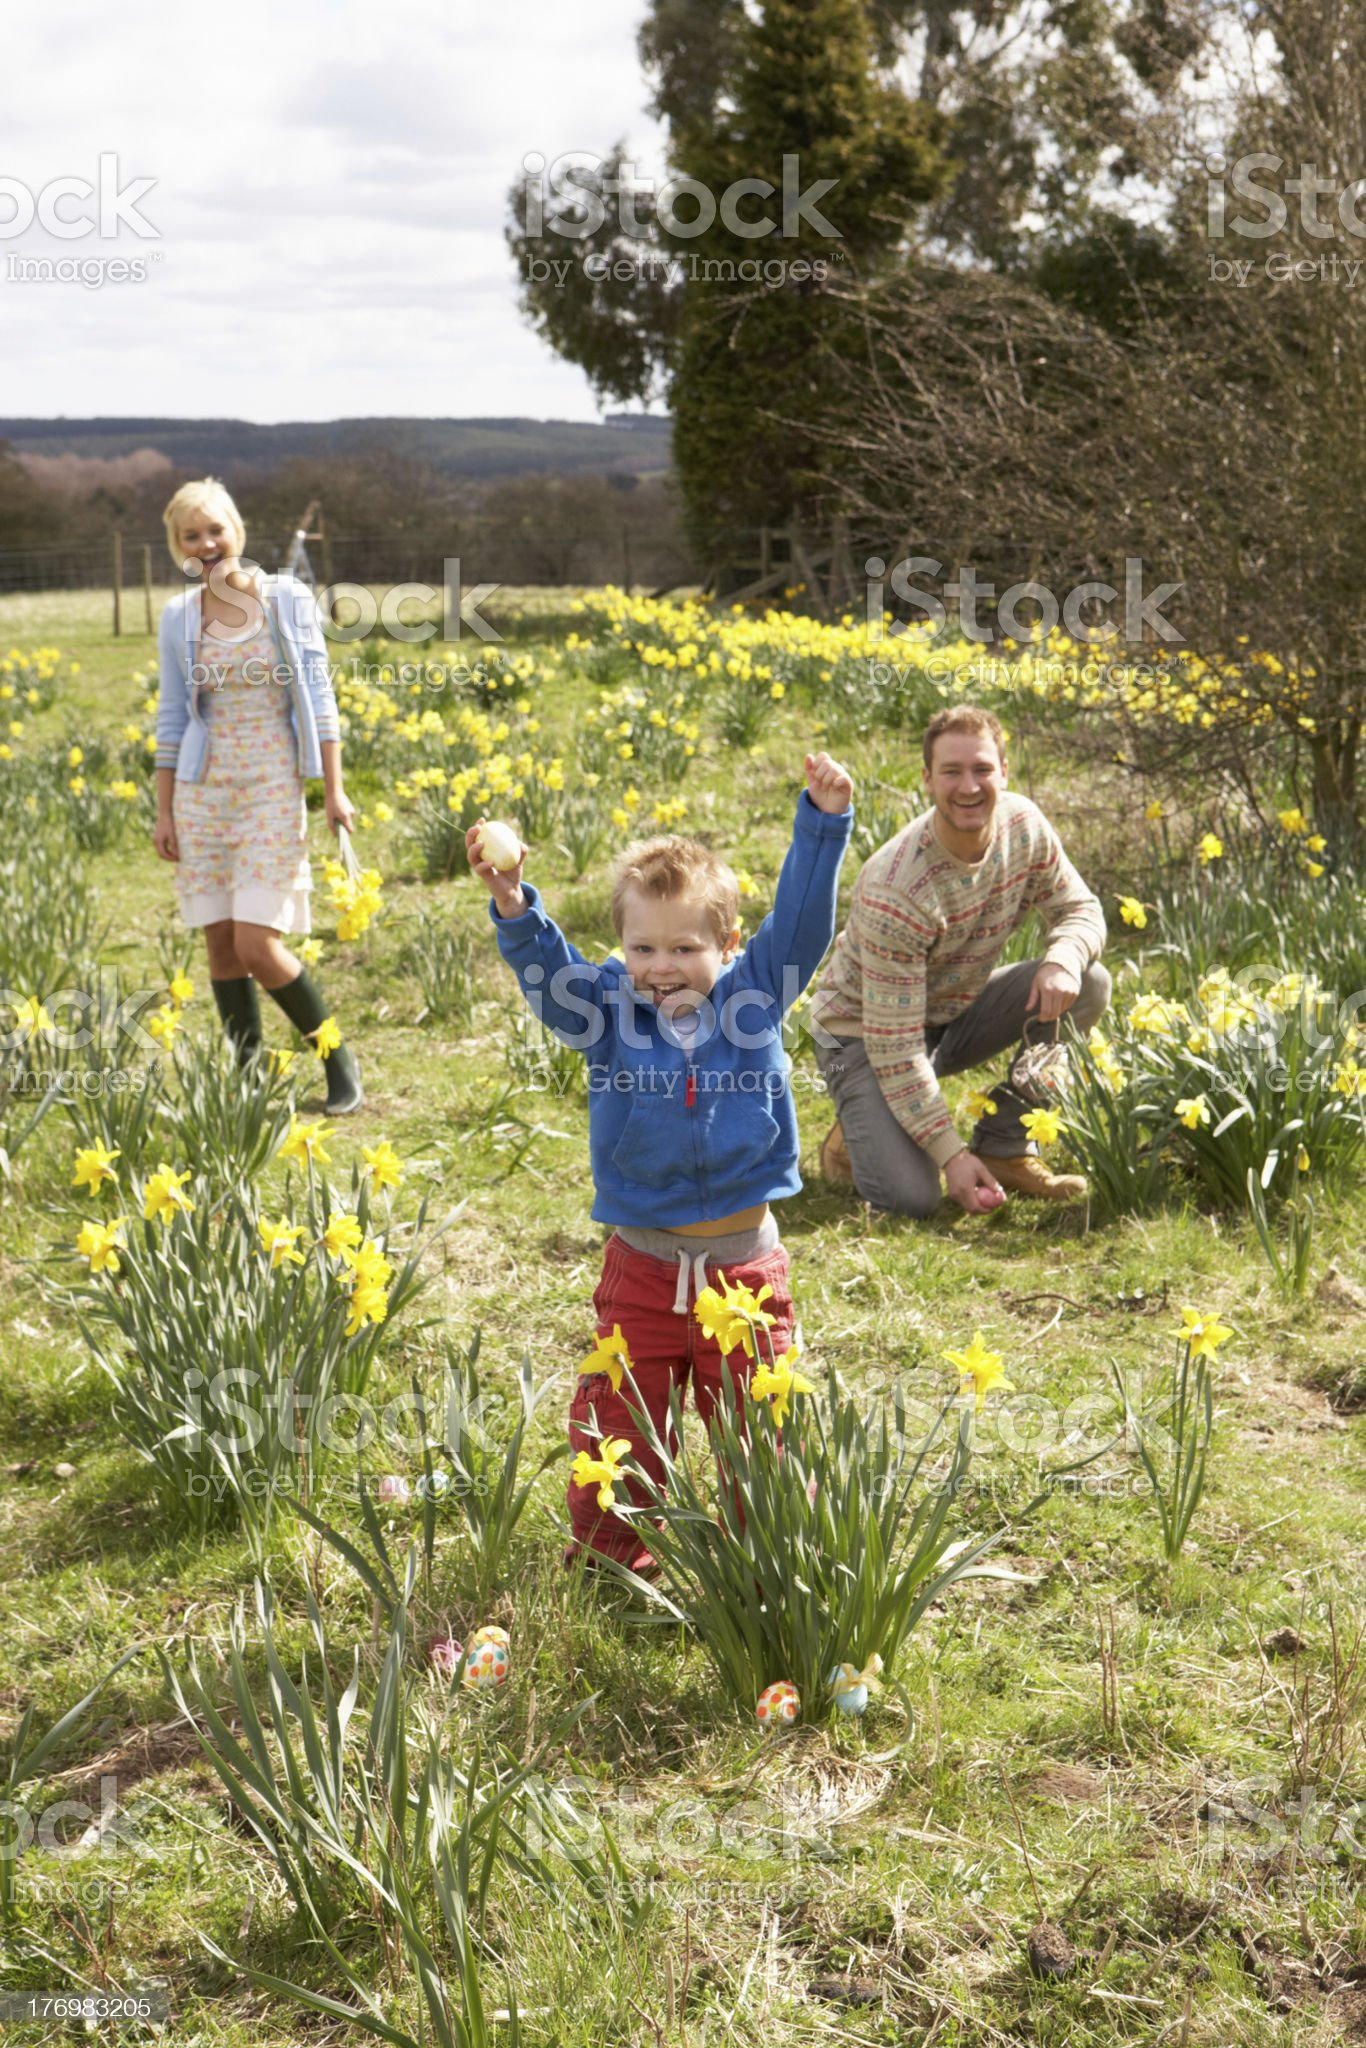 Family On Easter Egg Hunt In Daffodil Field royalty-free stock photo